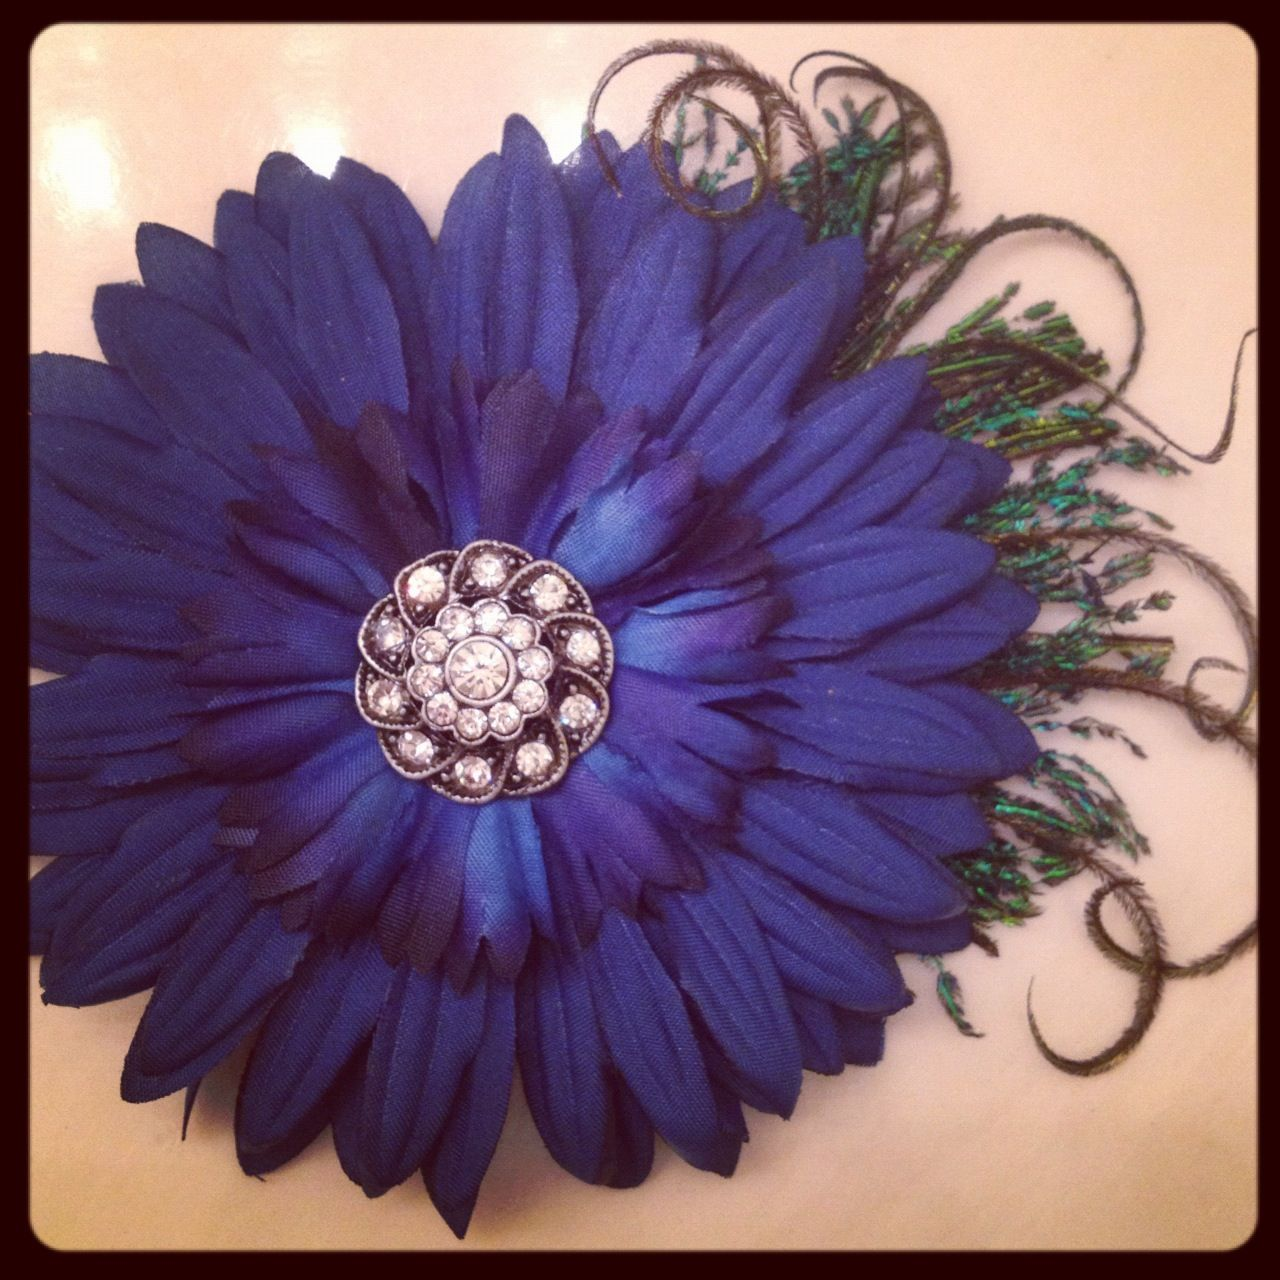 Blooming into fall -$20 by blooming things on esty